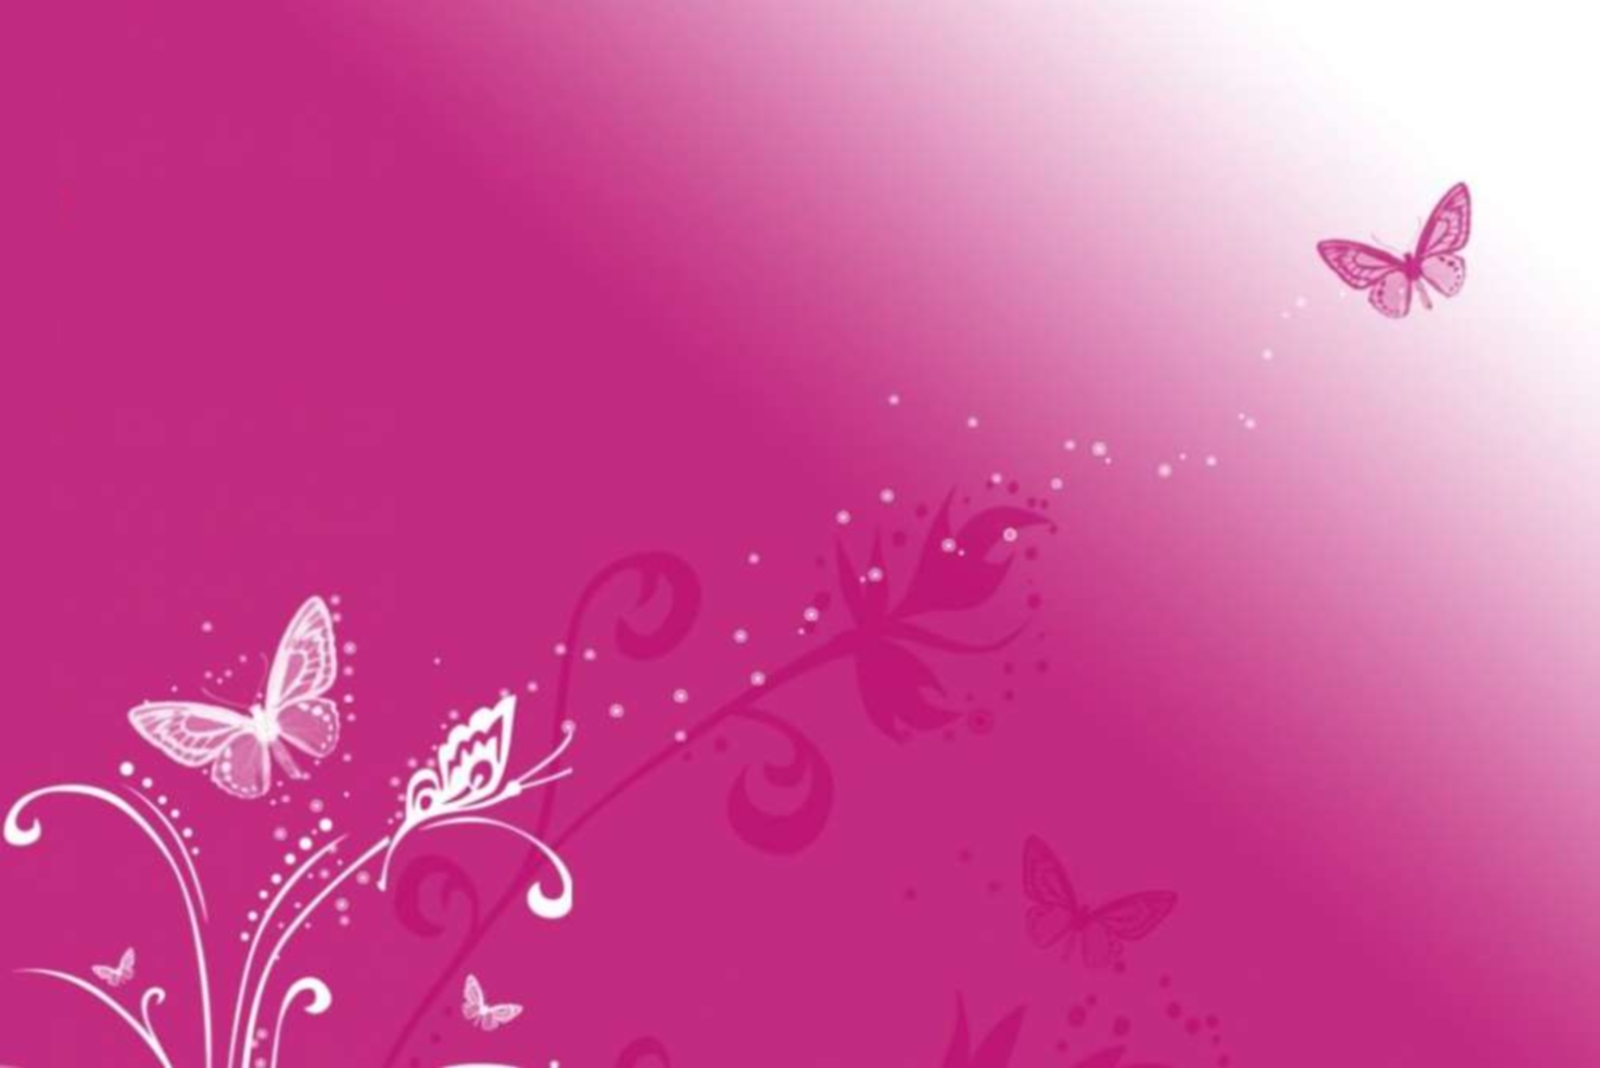 Pink Background Images 8 1600x1068